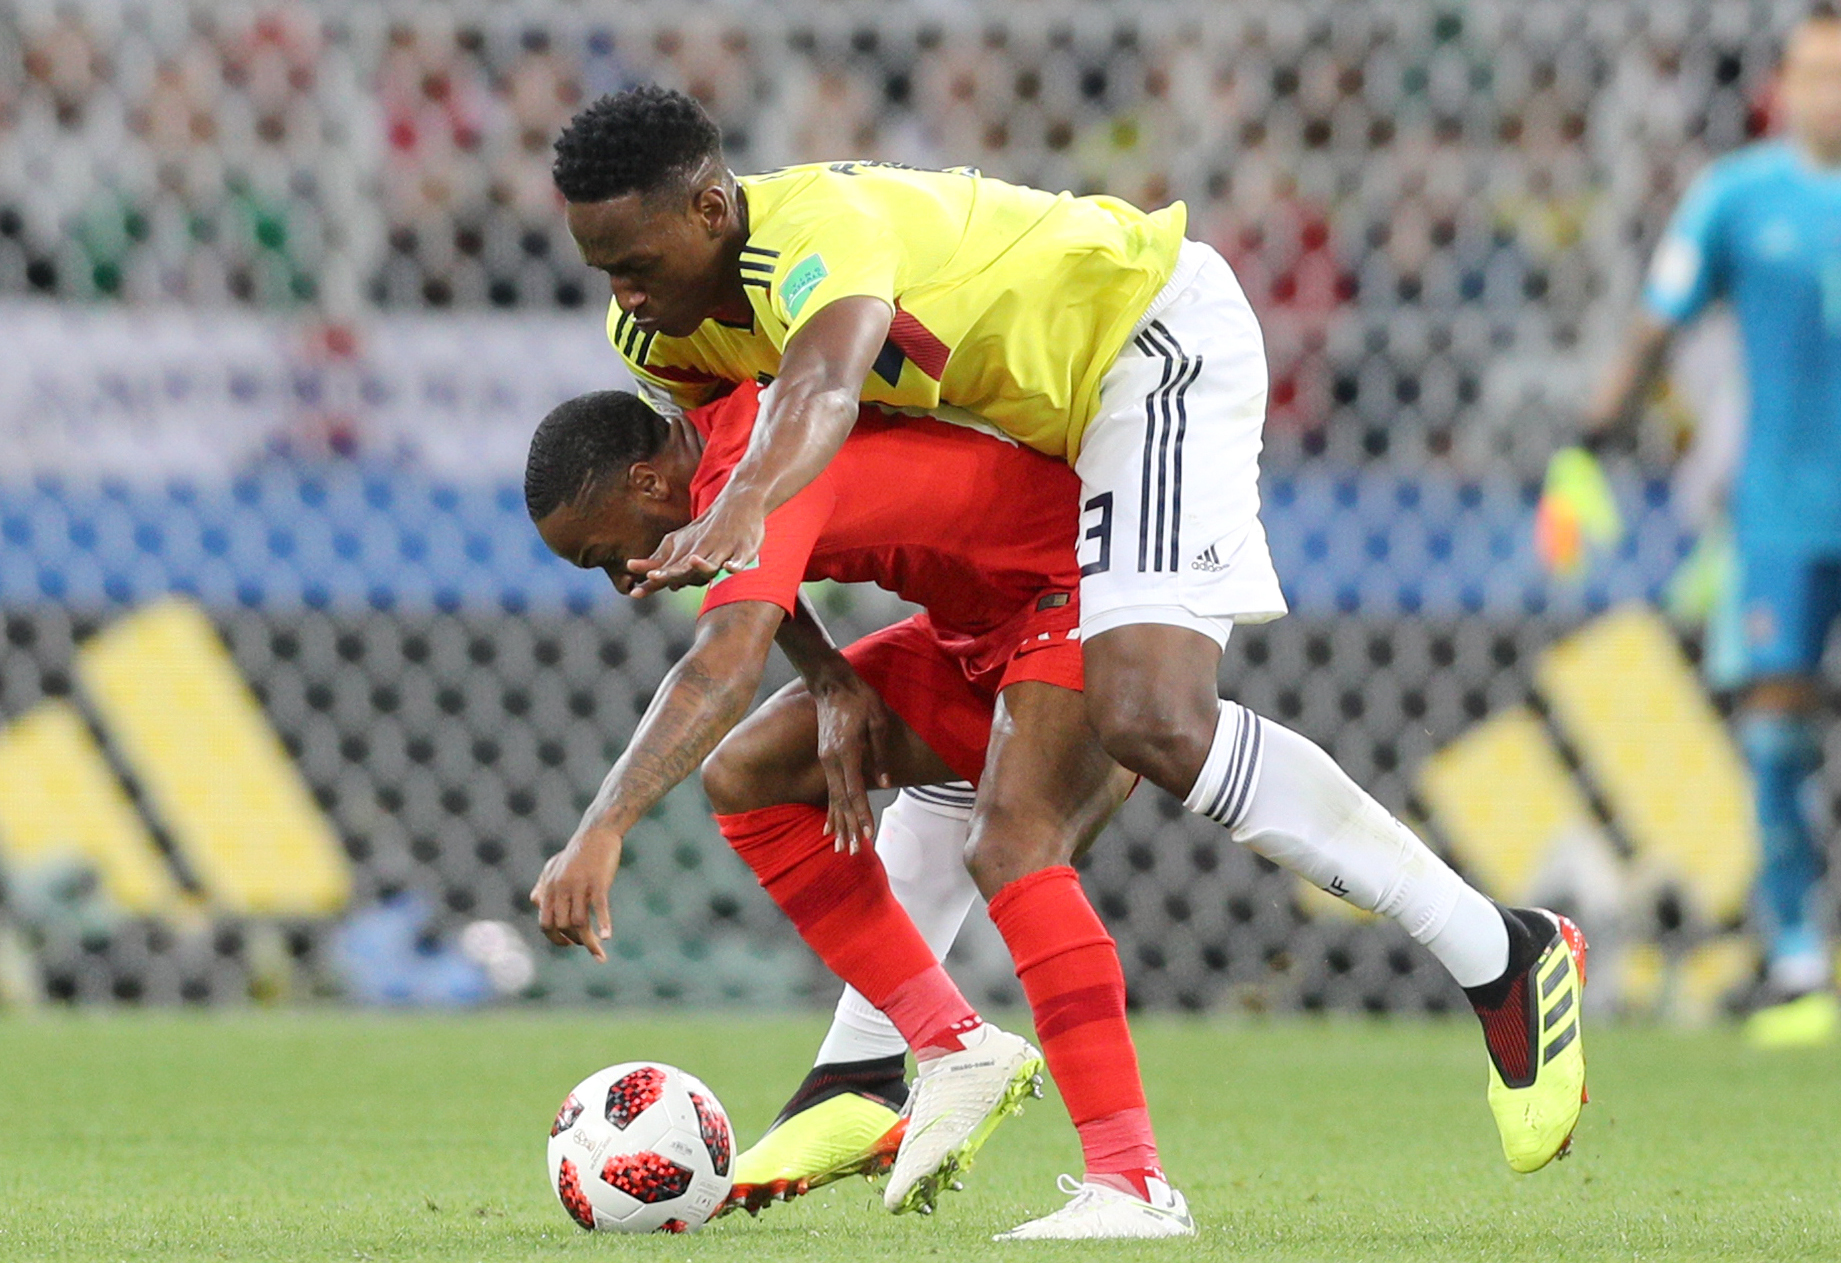 Colombian Official Caught Trying To Shoulder Sterling As He Left Pitch PA 37357653